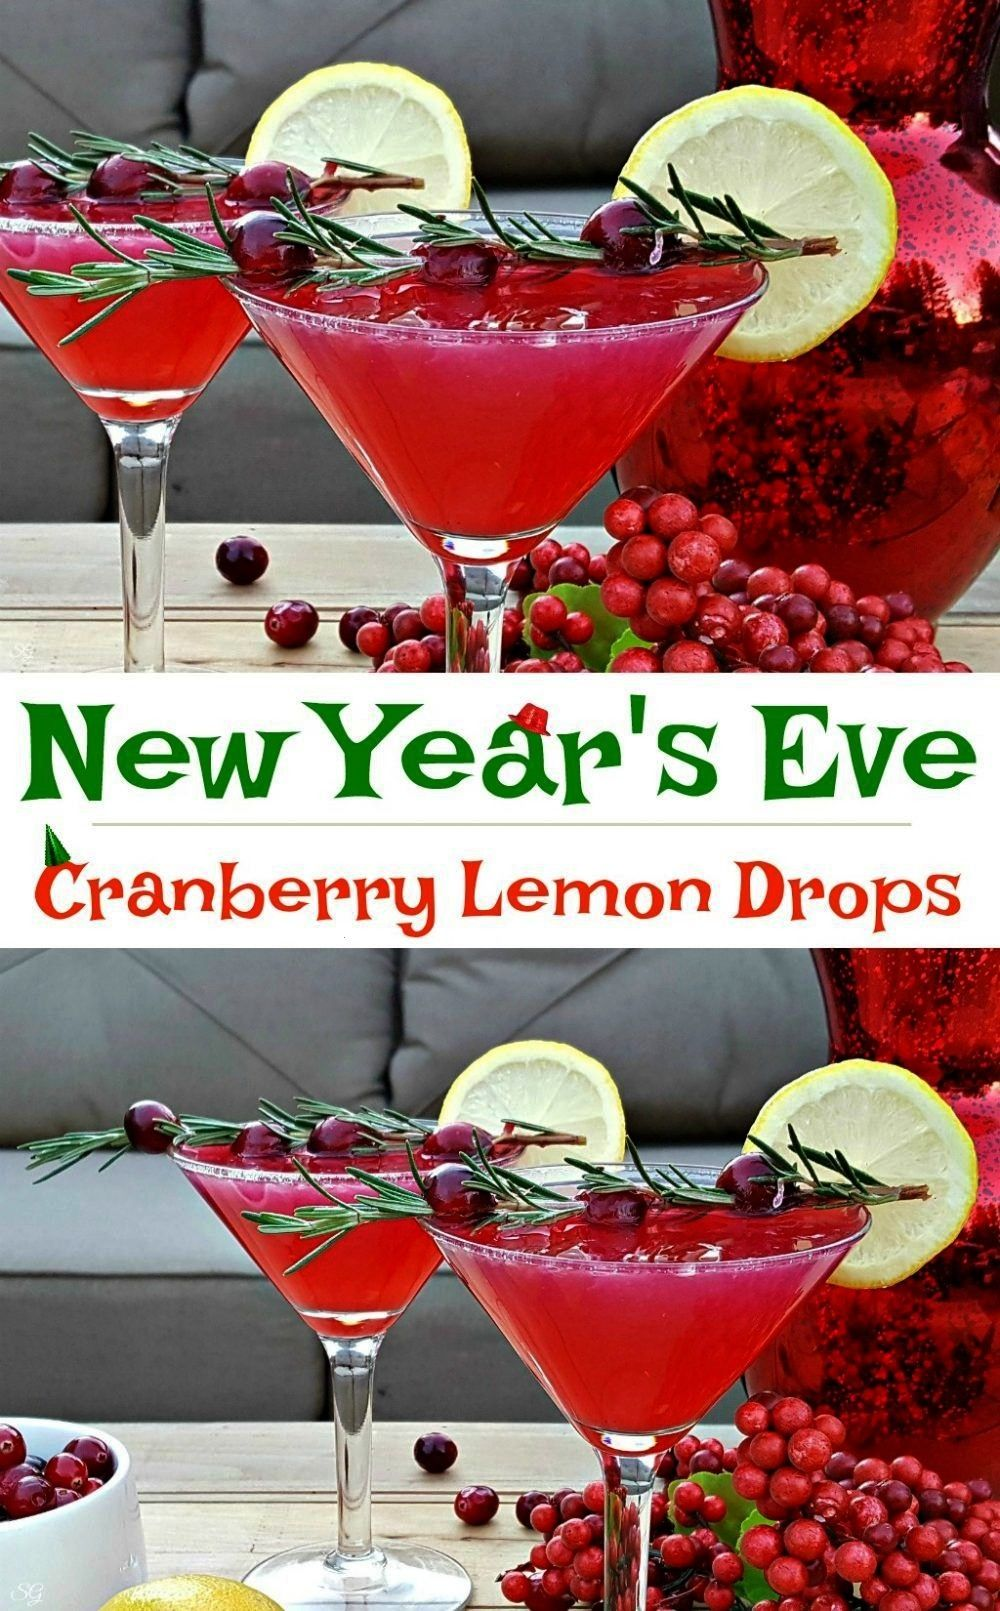 Year's Drink Recipe - Cranberry Lemon Drop -  New Year's Eve Drink Recipe! A cranberry lemon drop